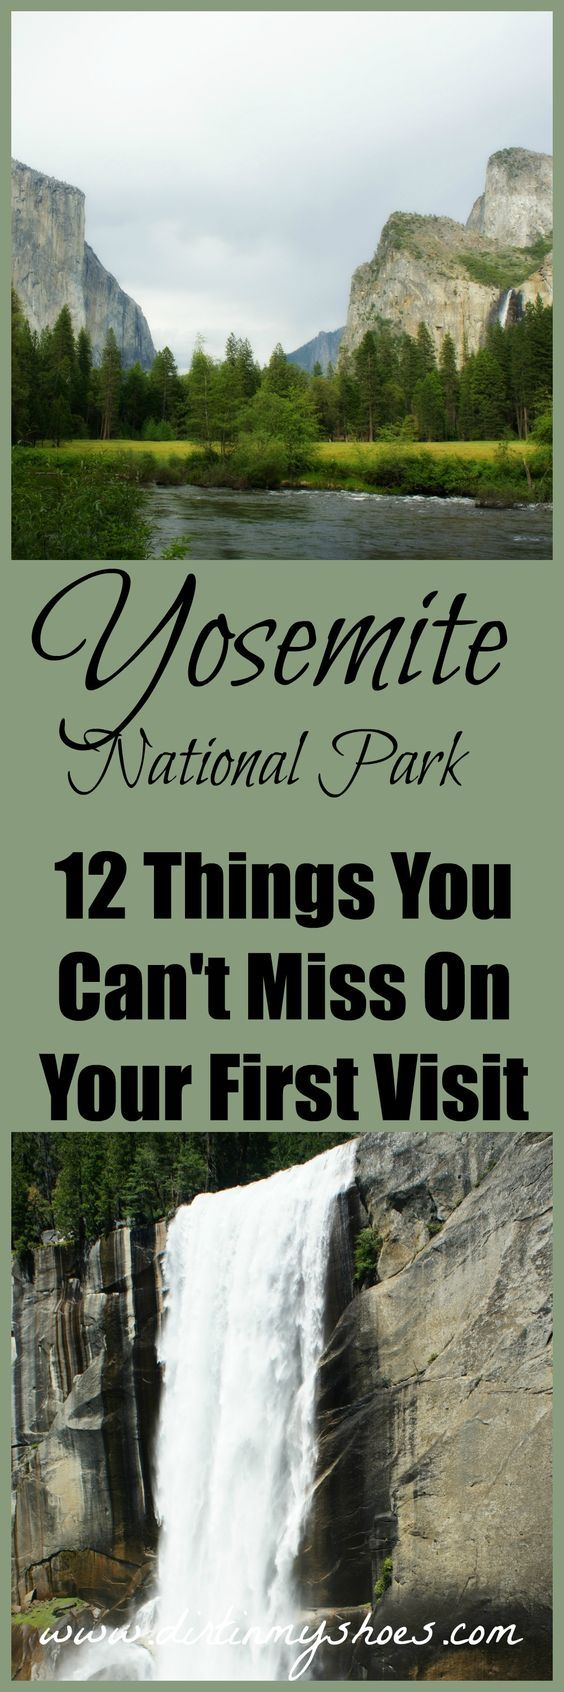 12 things you absolutely can't miss in Yosemite -- this list has it all!  Hikes, lakes, and viewpoints for every visitor to Yosemite National Park.  Don't travel without this list (written by a former park ranger)!